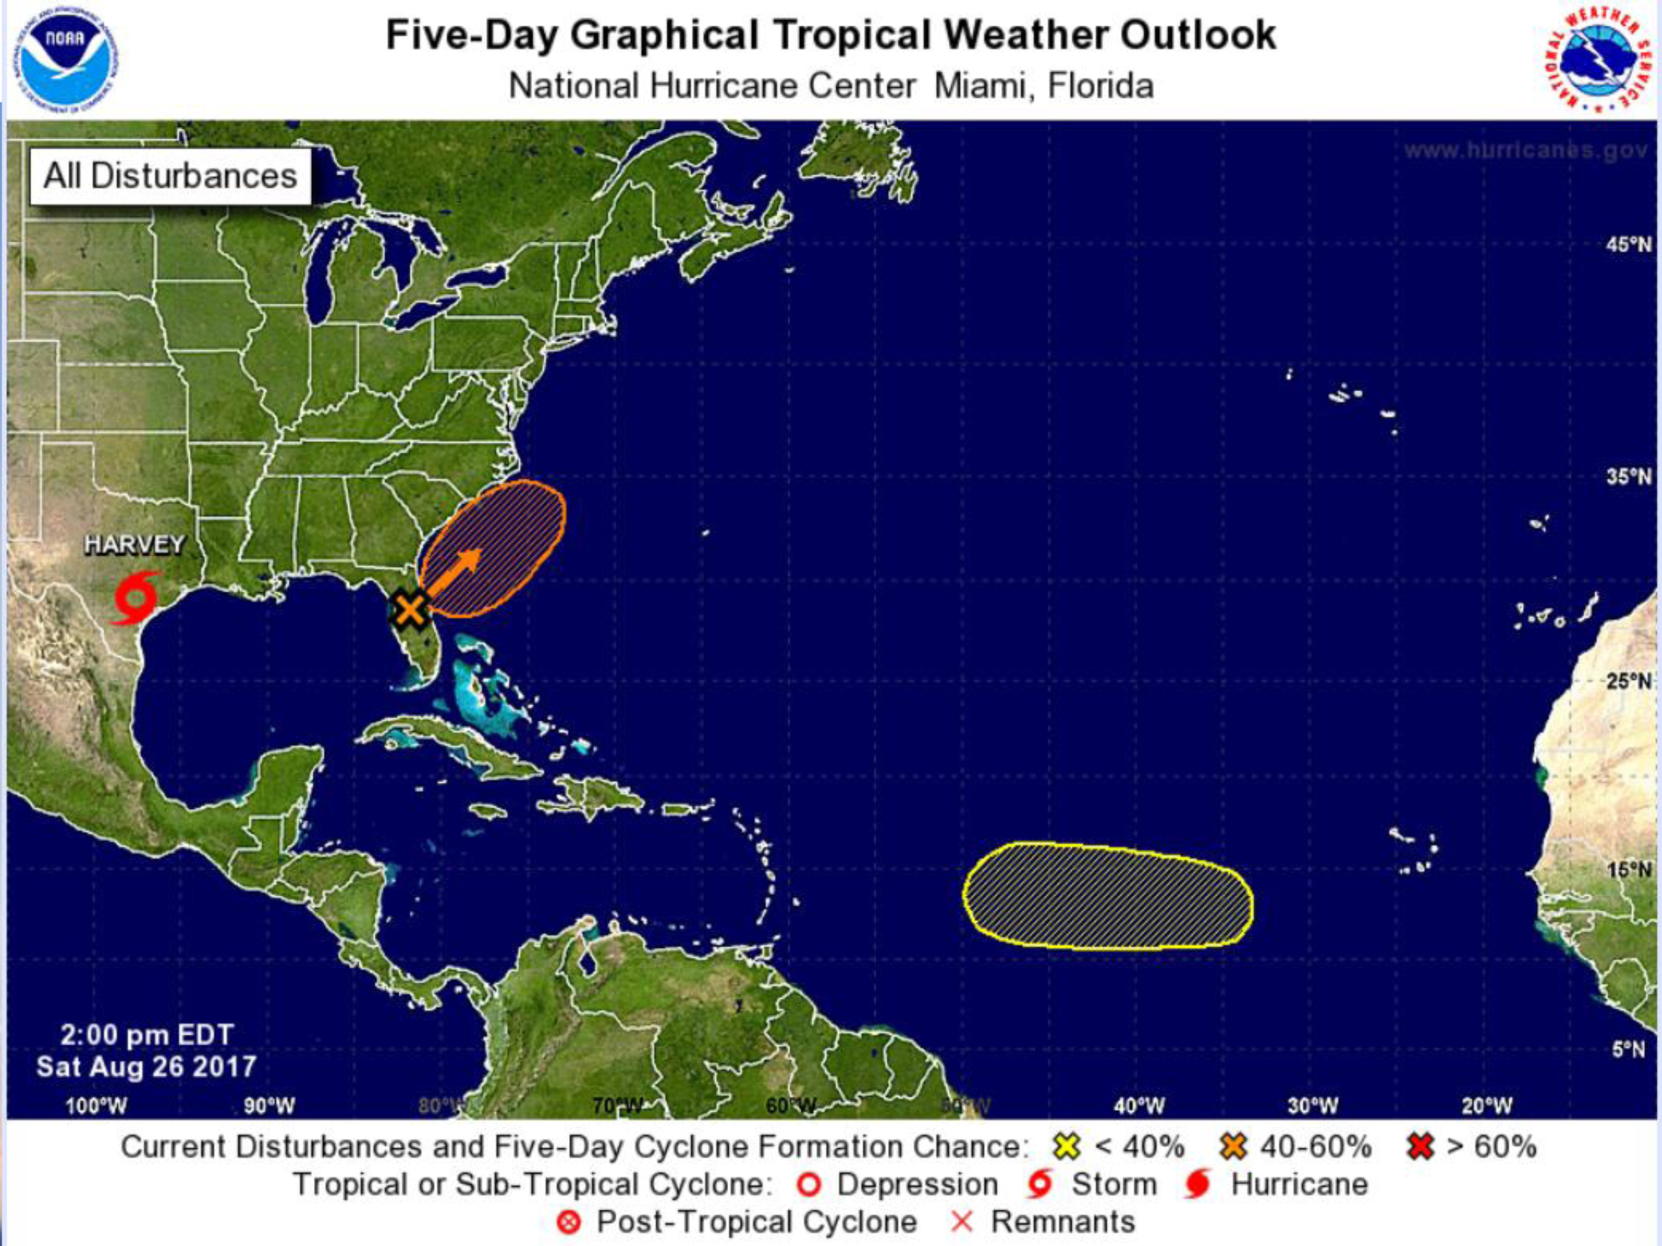 NHC: Issues advisory for Potential Tropical Cyclone Ten located near Georgia coast